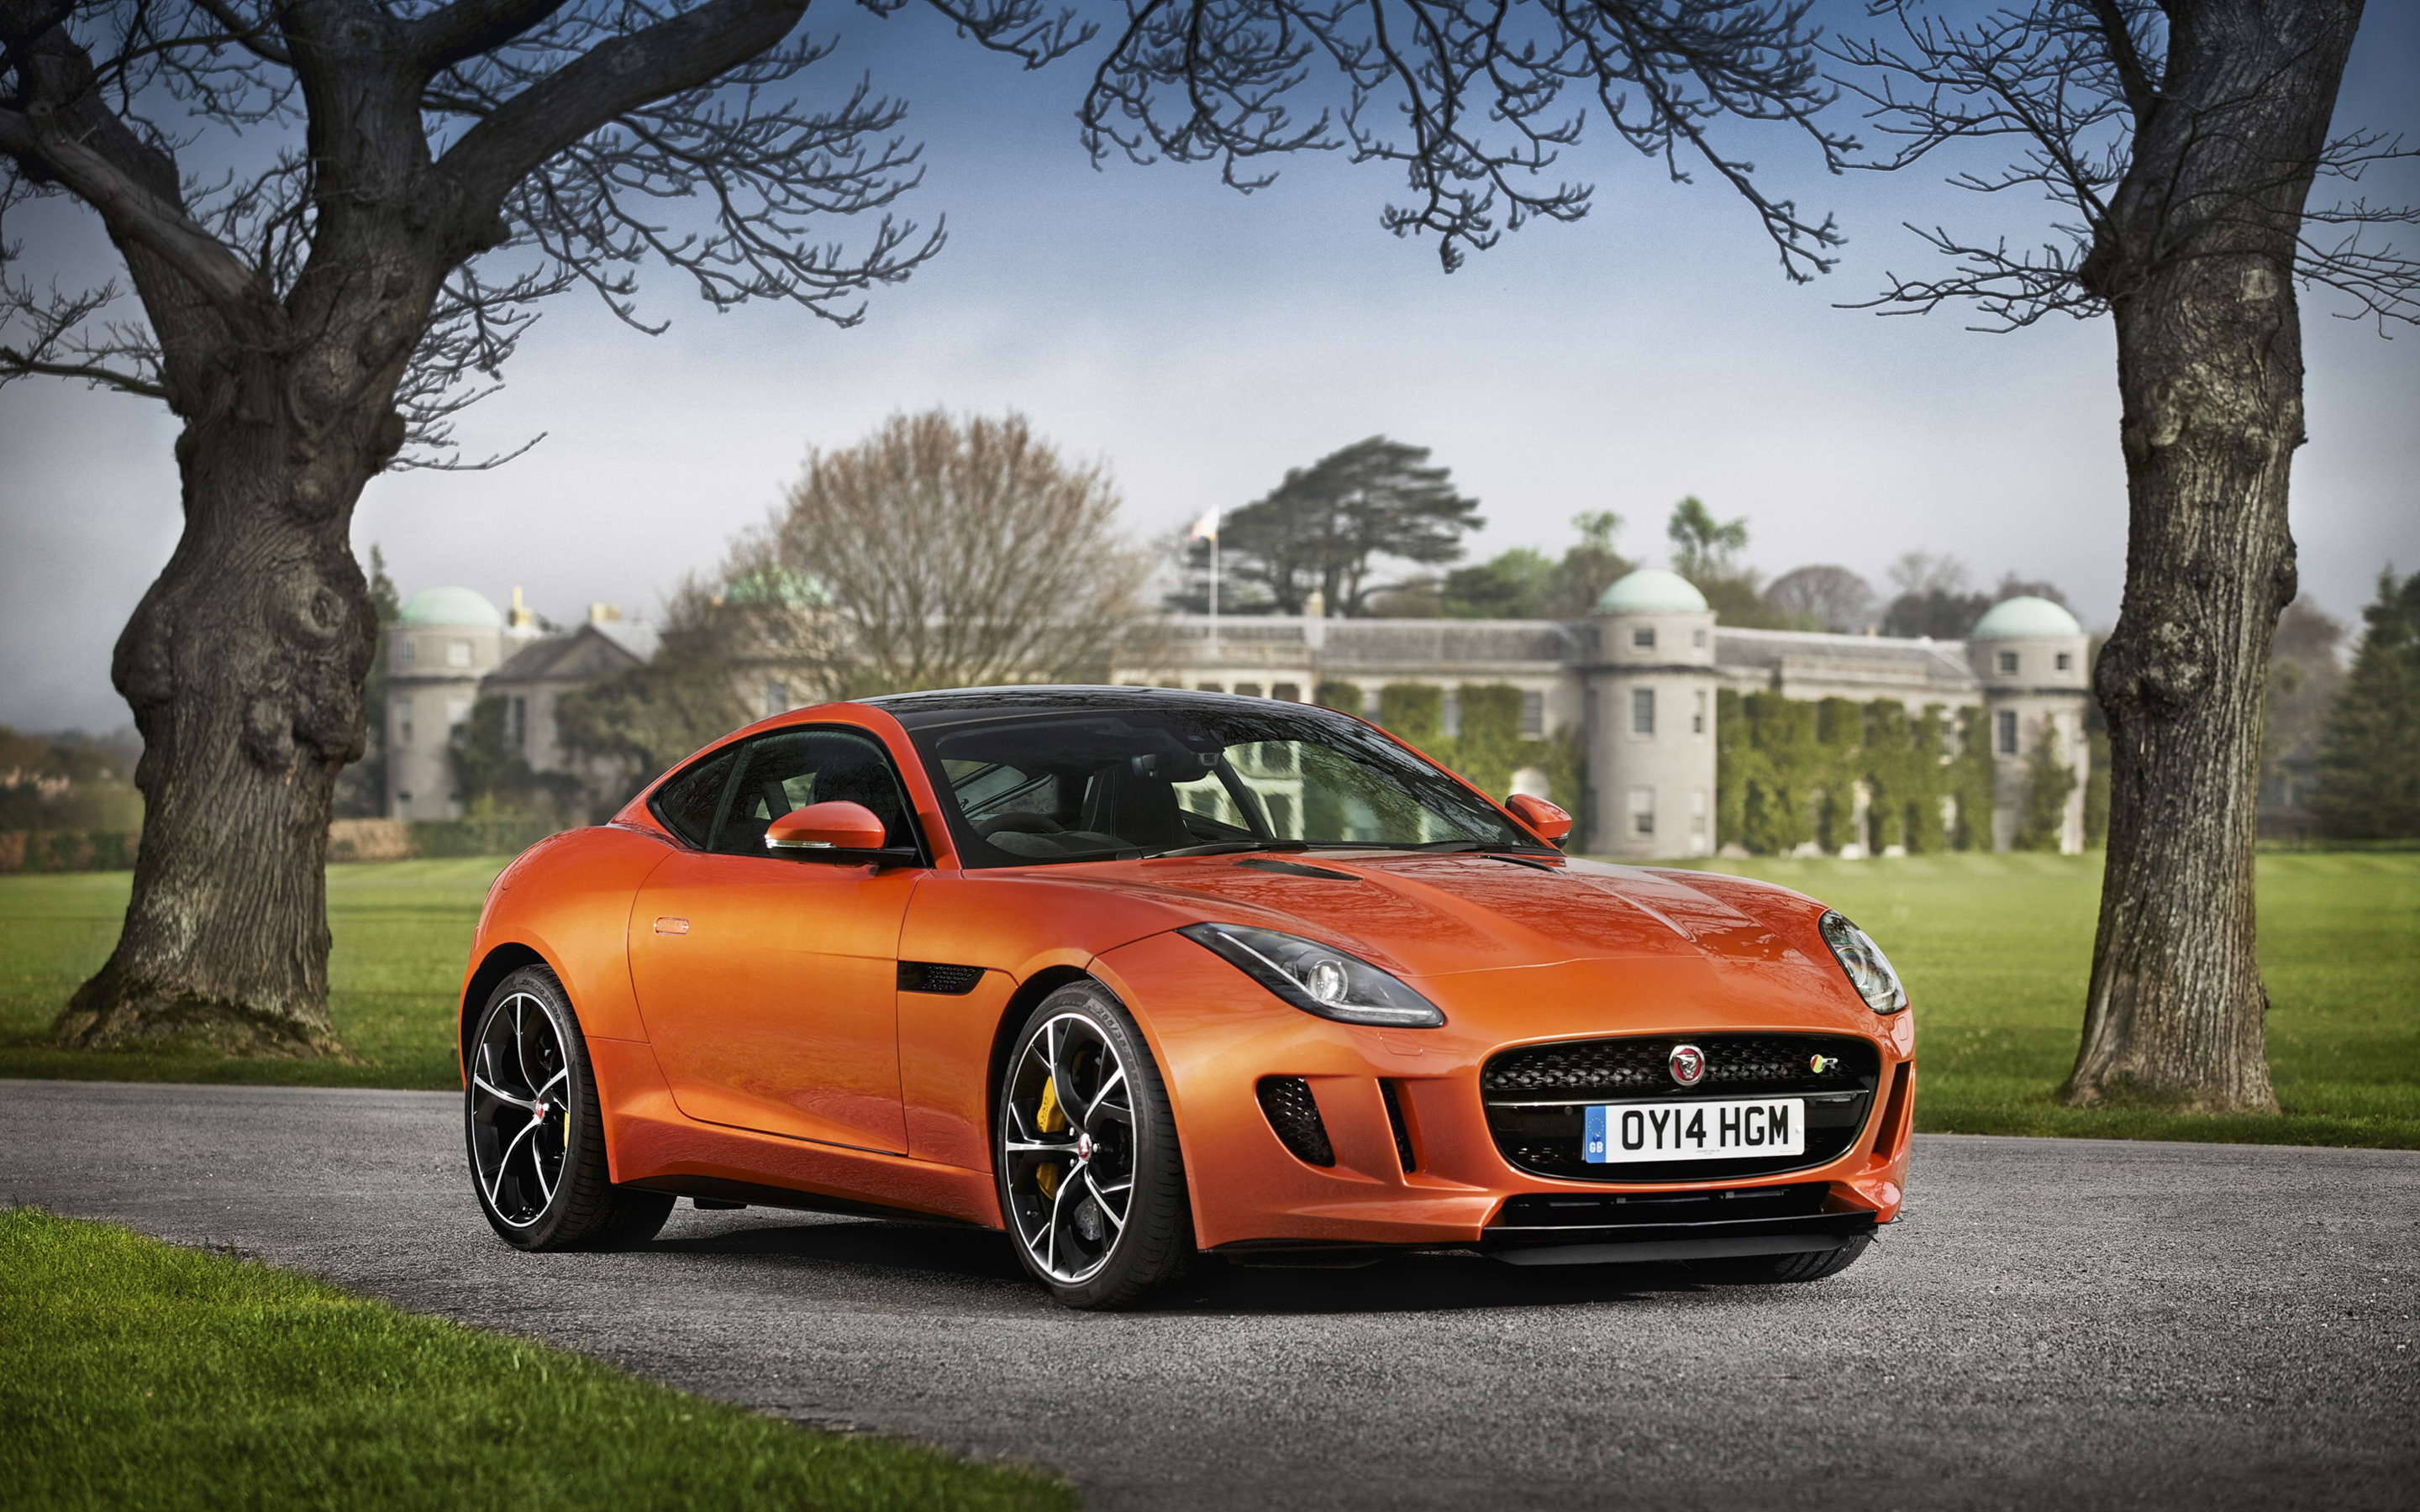 2014 Jaguar F type R Coupe 7 Wallpaper HD Car Wallpapers 2880x1800